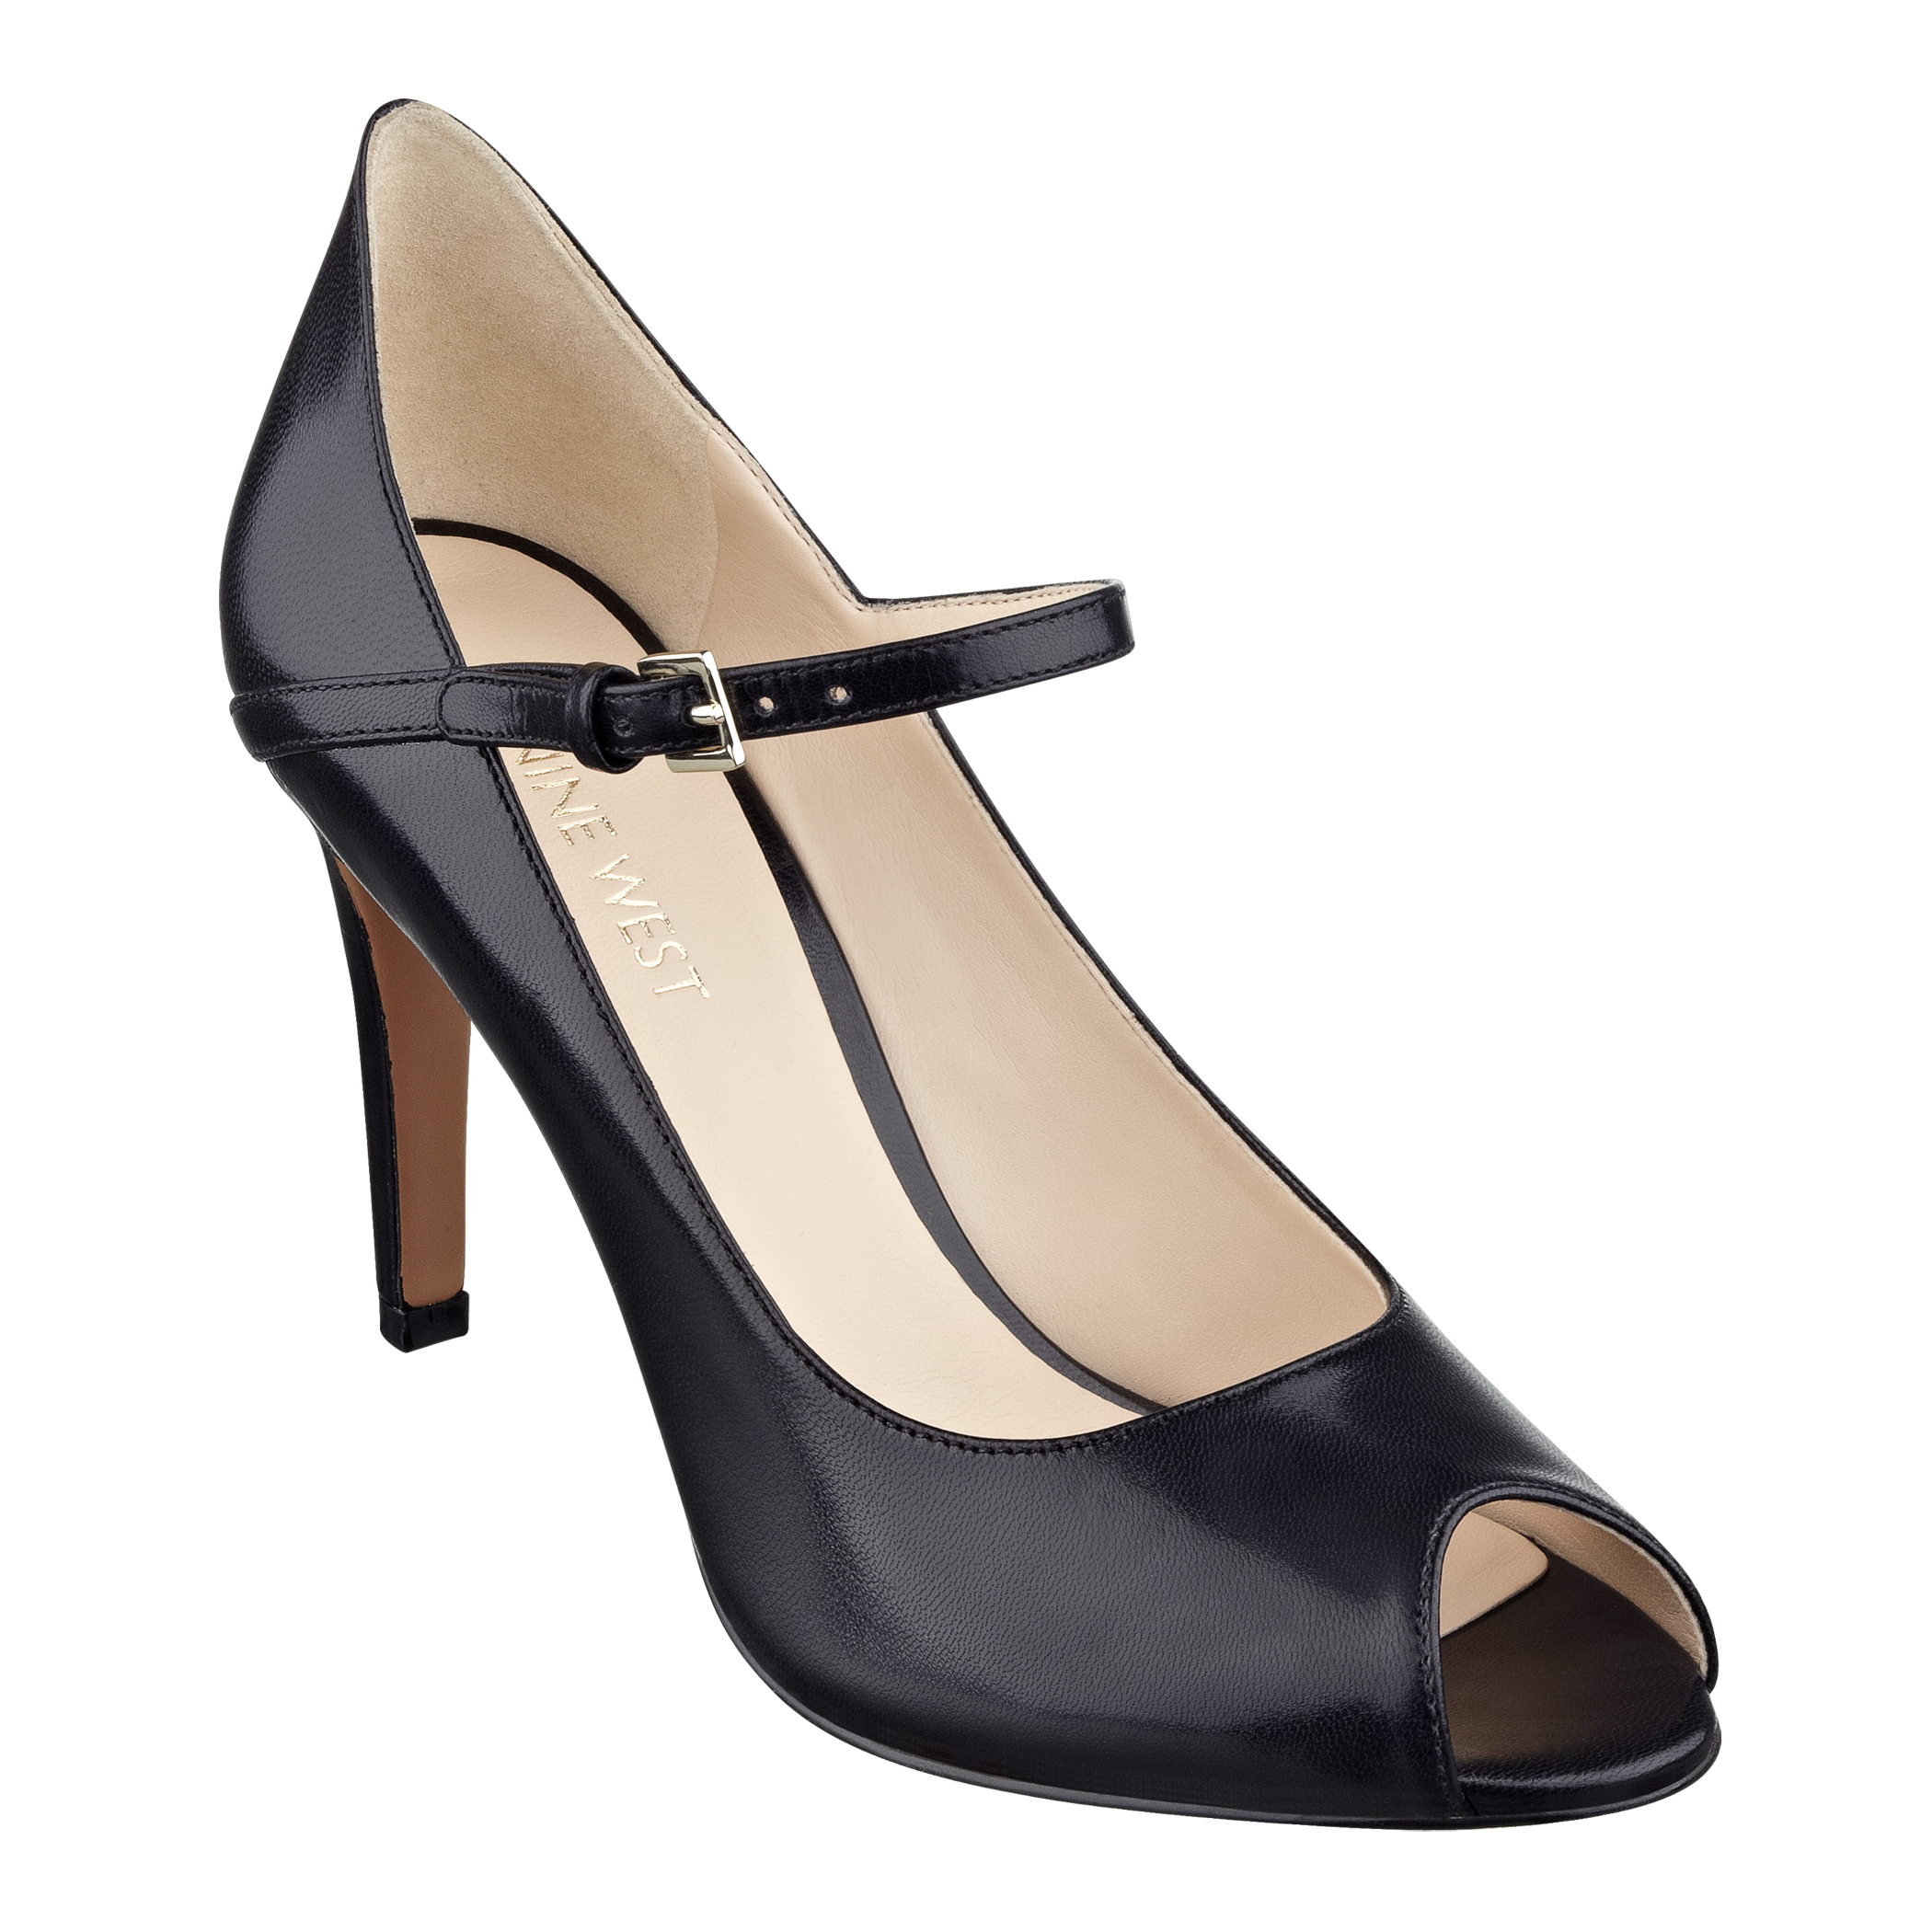 Nine West Deardiary Mary Jane Pump In Black Black Leather